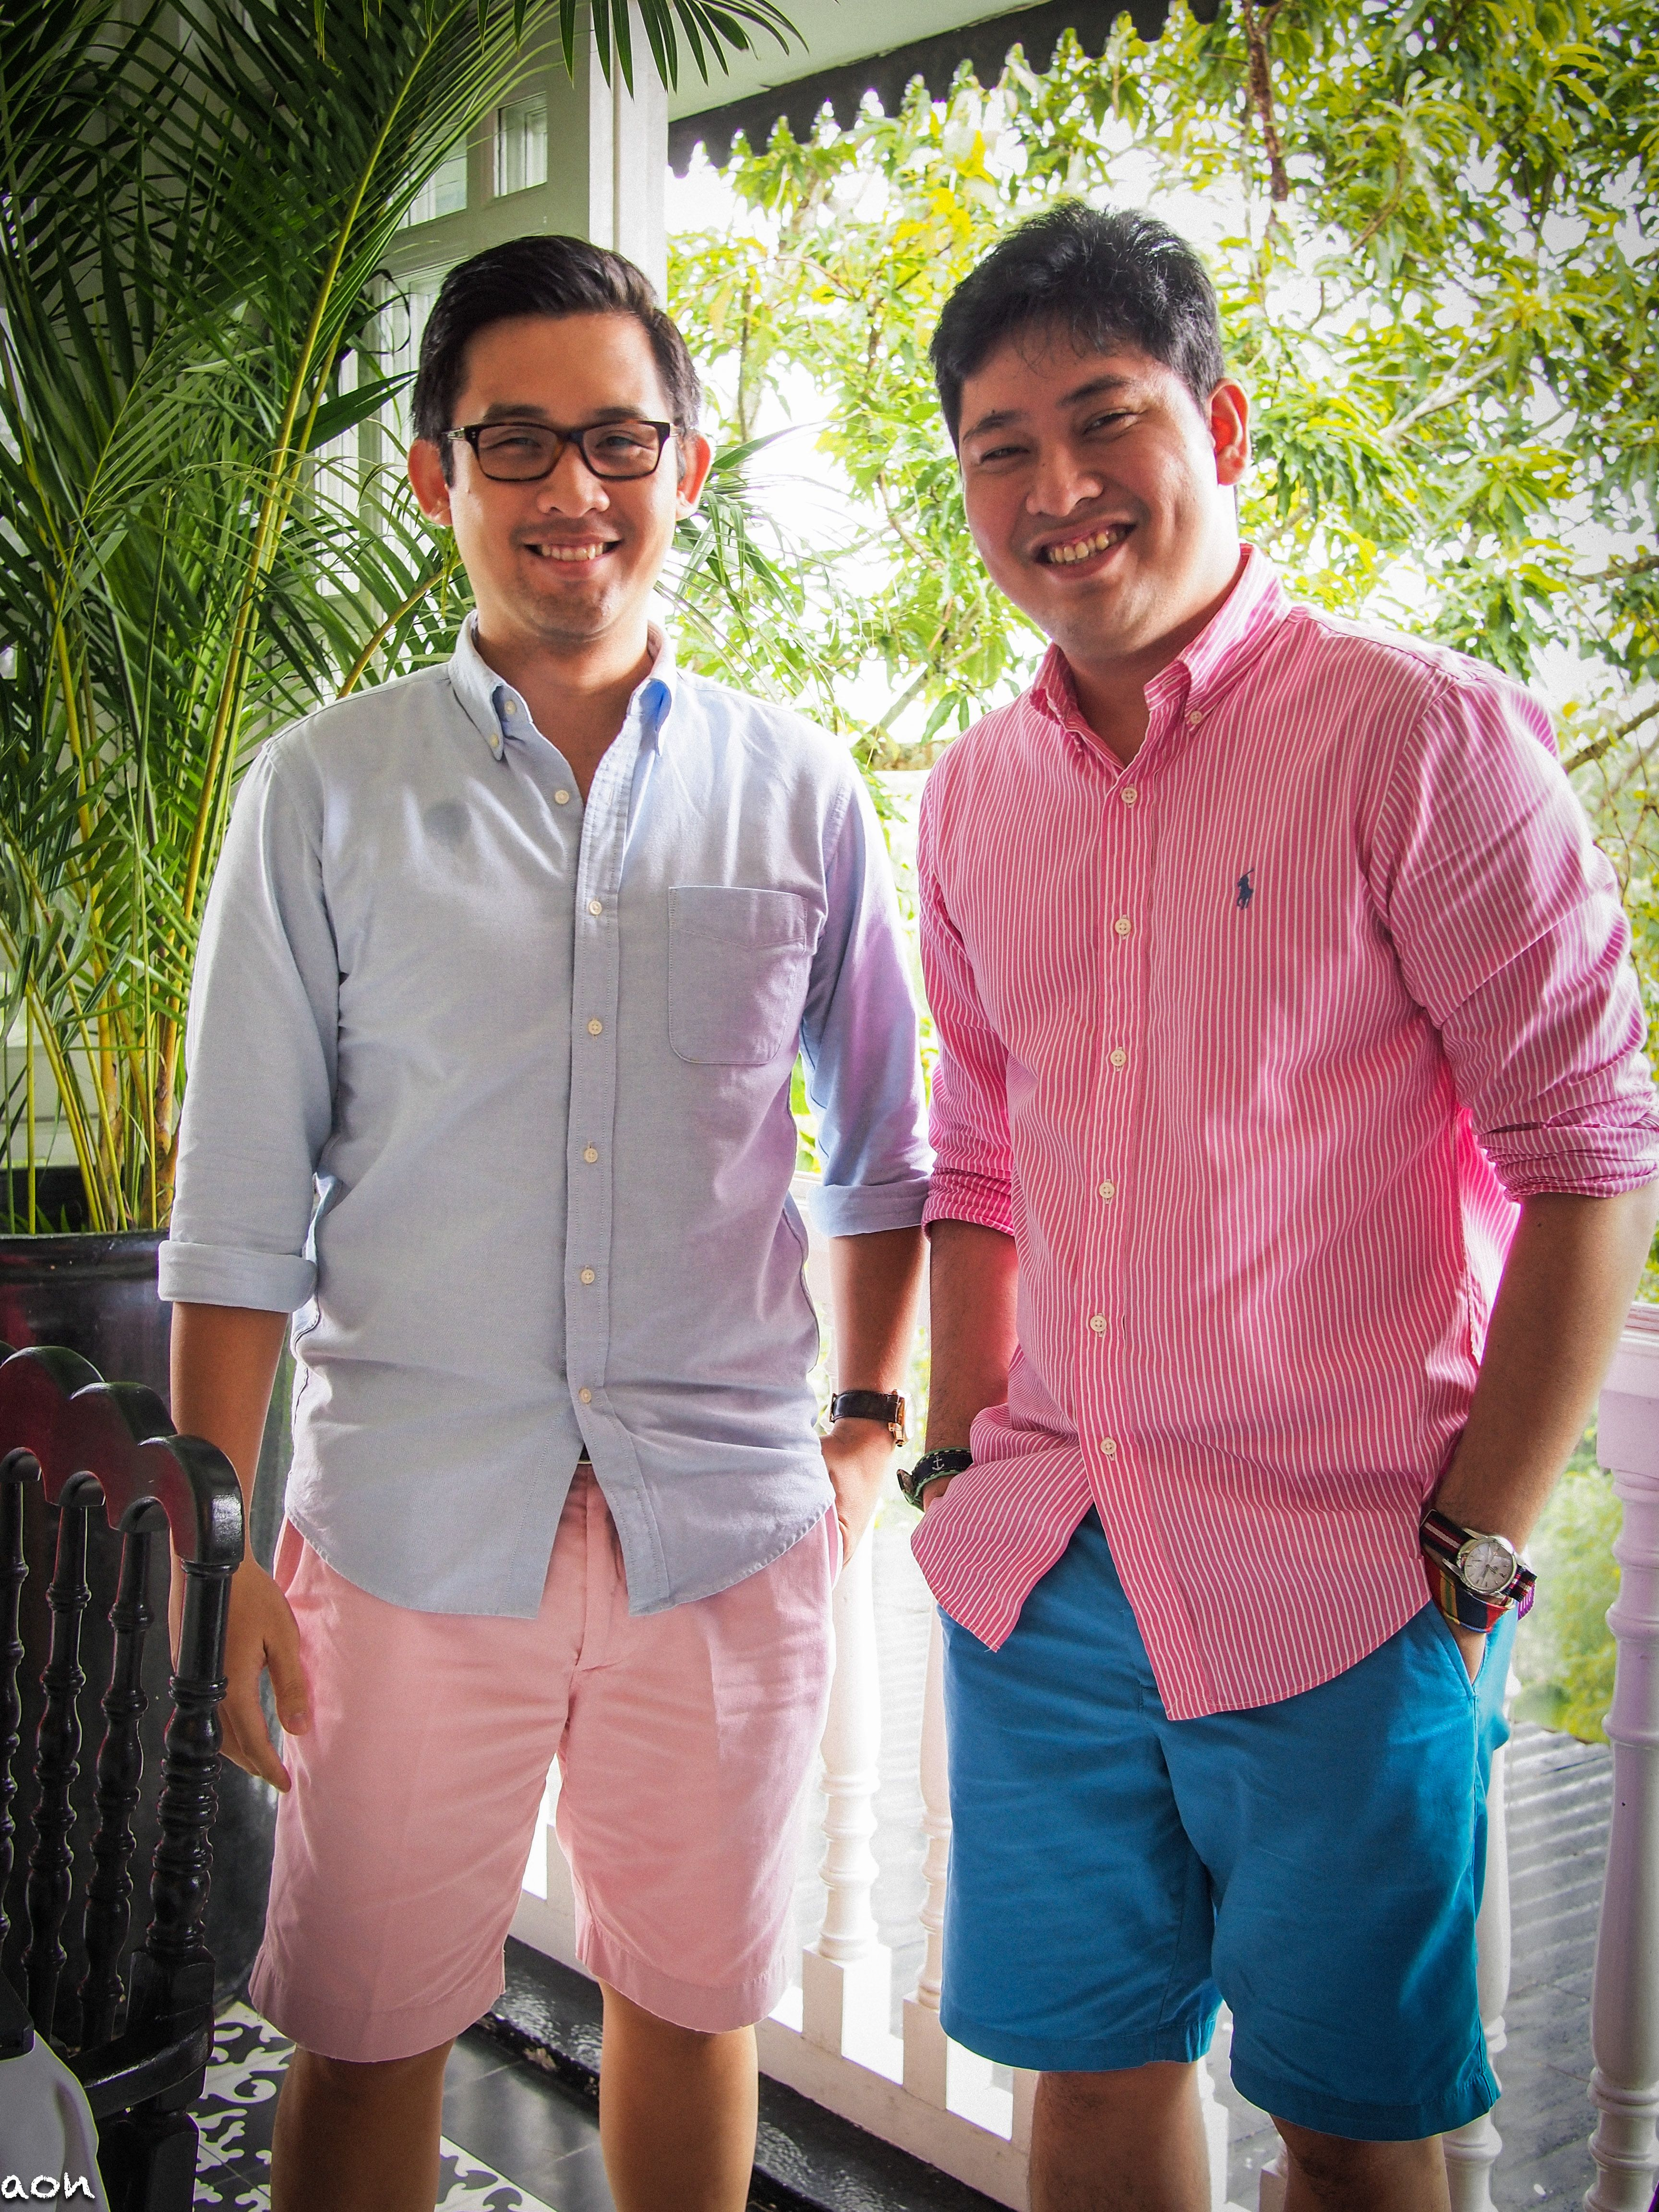 preppy summer outfits - pink ralph lauren shirt | Outfits I love ...